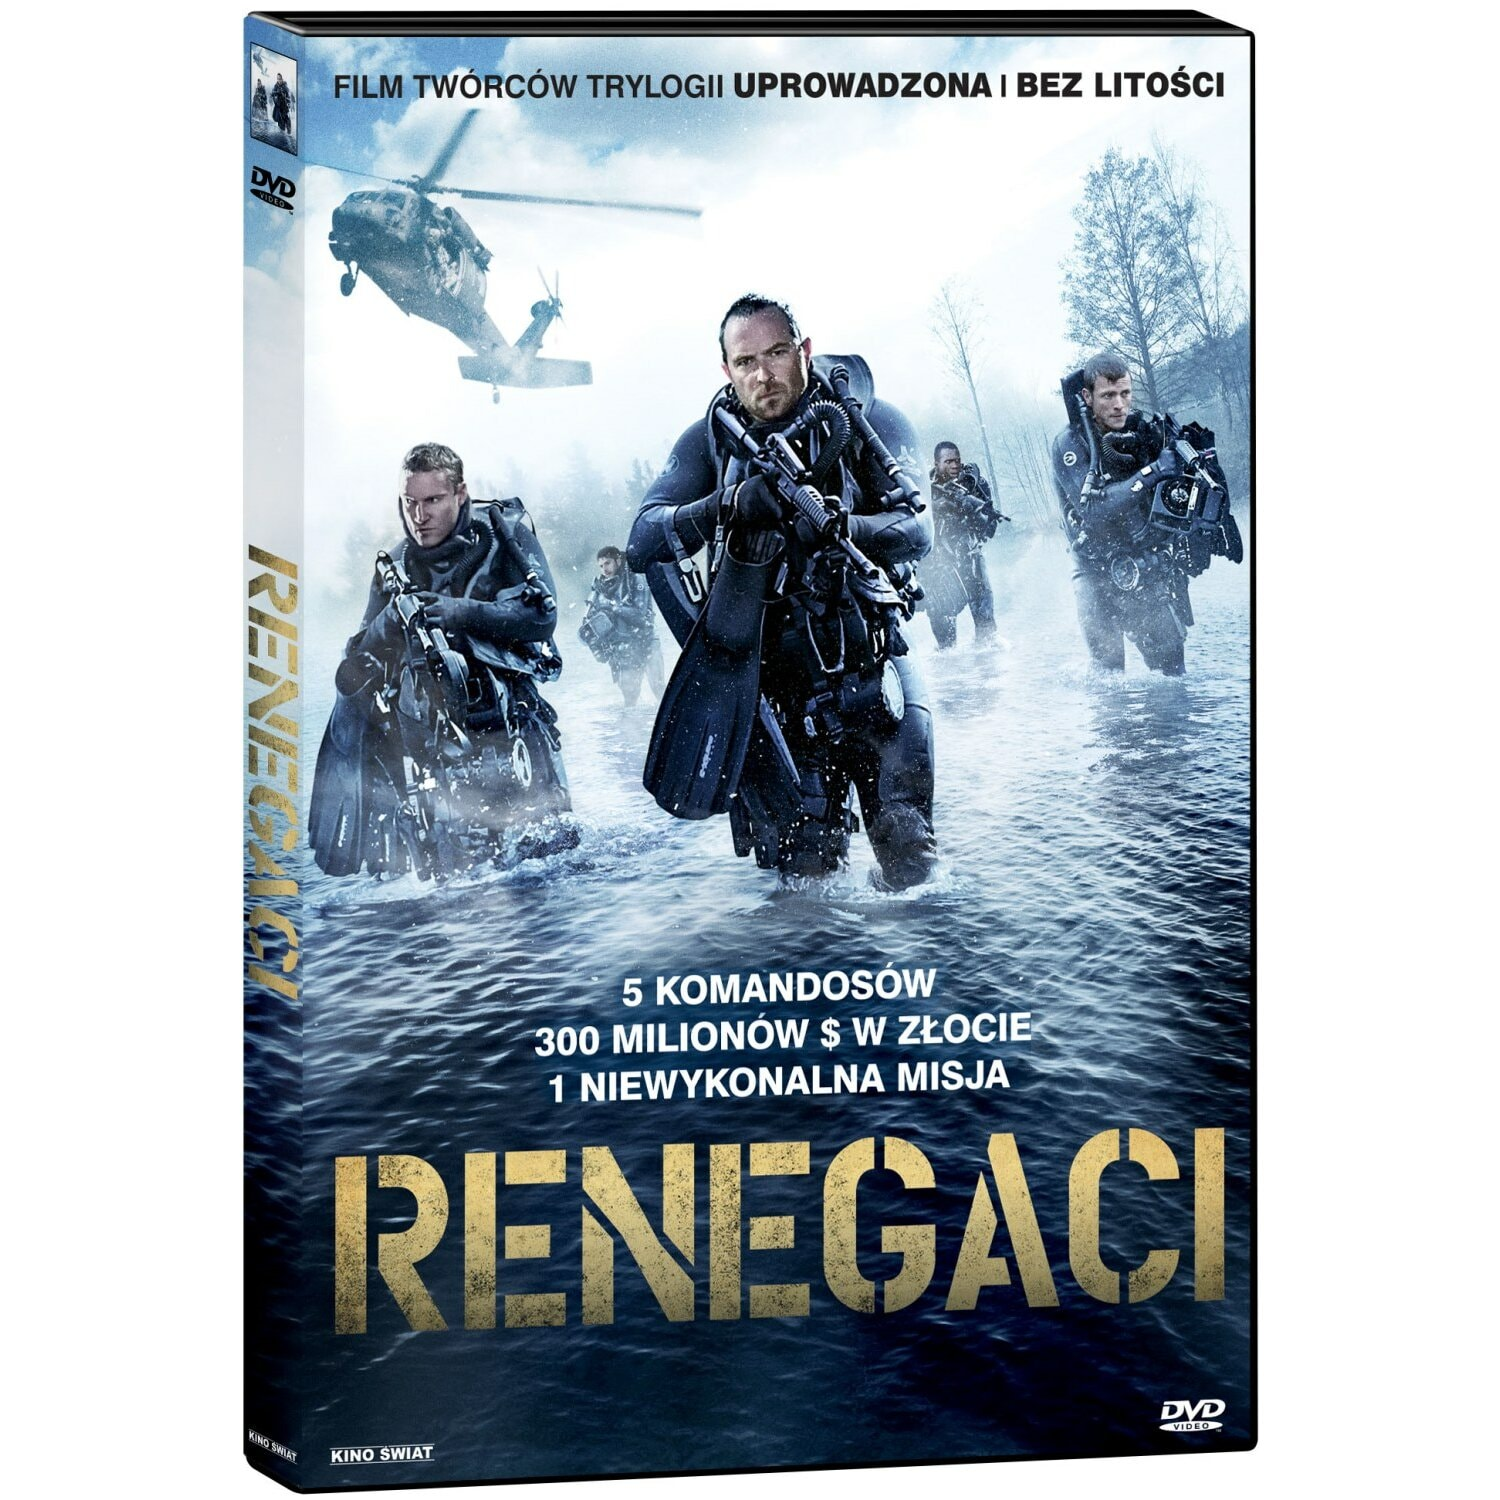 Renegaci (DVD)